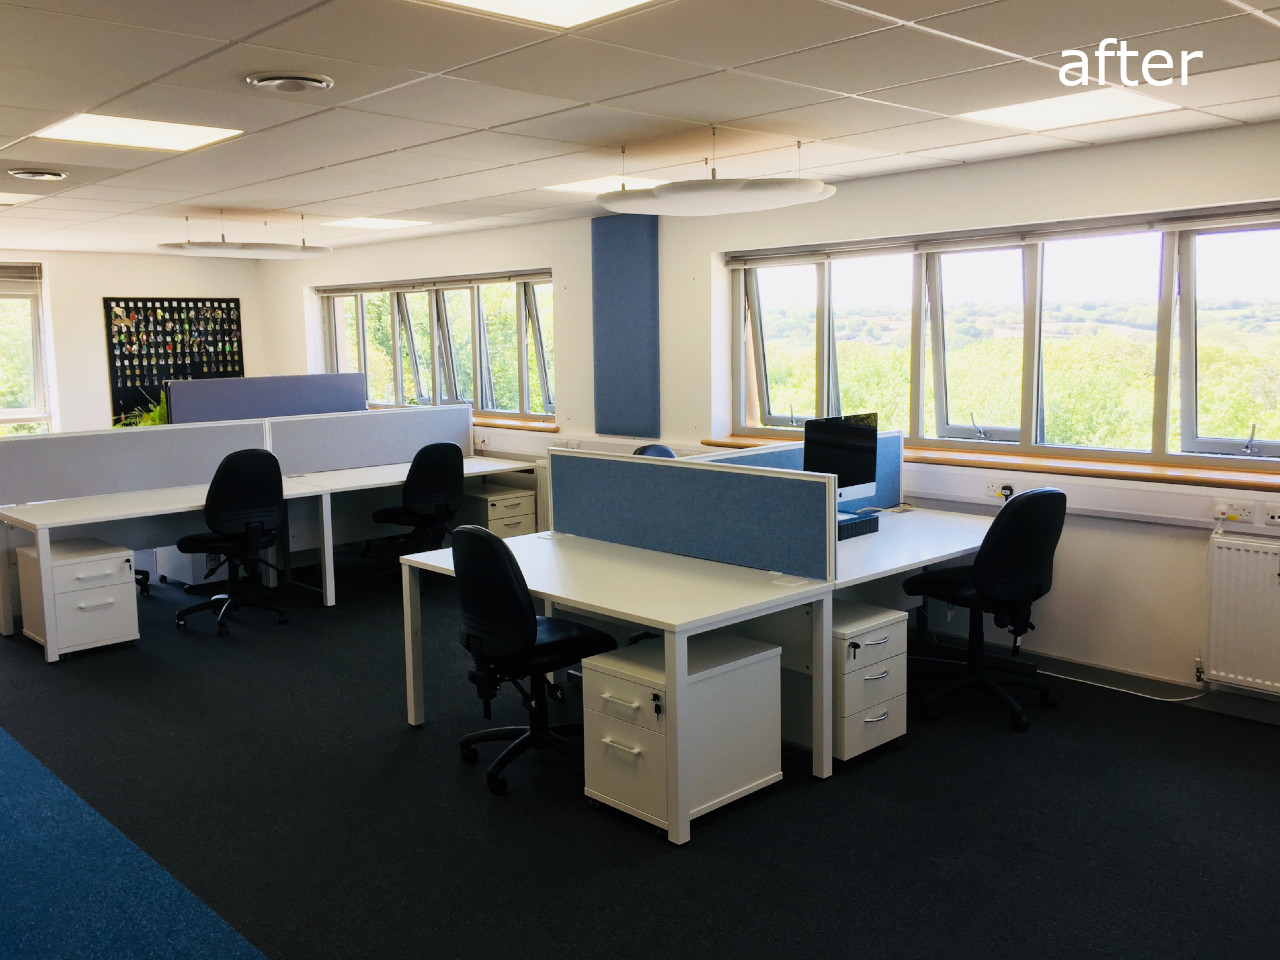 office interiors plymouth, office furniture plymouth, office furniture exeter, office interiors exeter, office interiors devon, office refurbishment plymouth, office interior refurbishment Devon, office interior Plymouth, office interior Exeter, Office interior design in Devon, office fit out Plymouth, Exeter, Office fit out in Devon, office fit out Exeter, Office furniture in Devon, office furniture exeter, office furniture plymouth, Commercial property refurbishment plymouth, Hotel refurbishment plymouth, Leisure refurbishment, Office partitions plymouth, Office desks, chairs and tables, Space planning, Ergonomic office seating plymouth, Boardroom furniture plymouth, Office Design plymouth